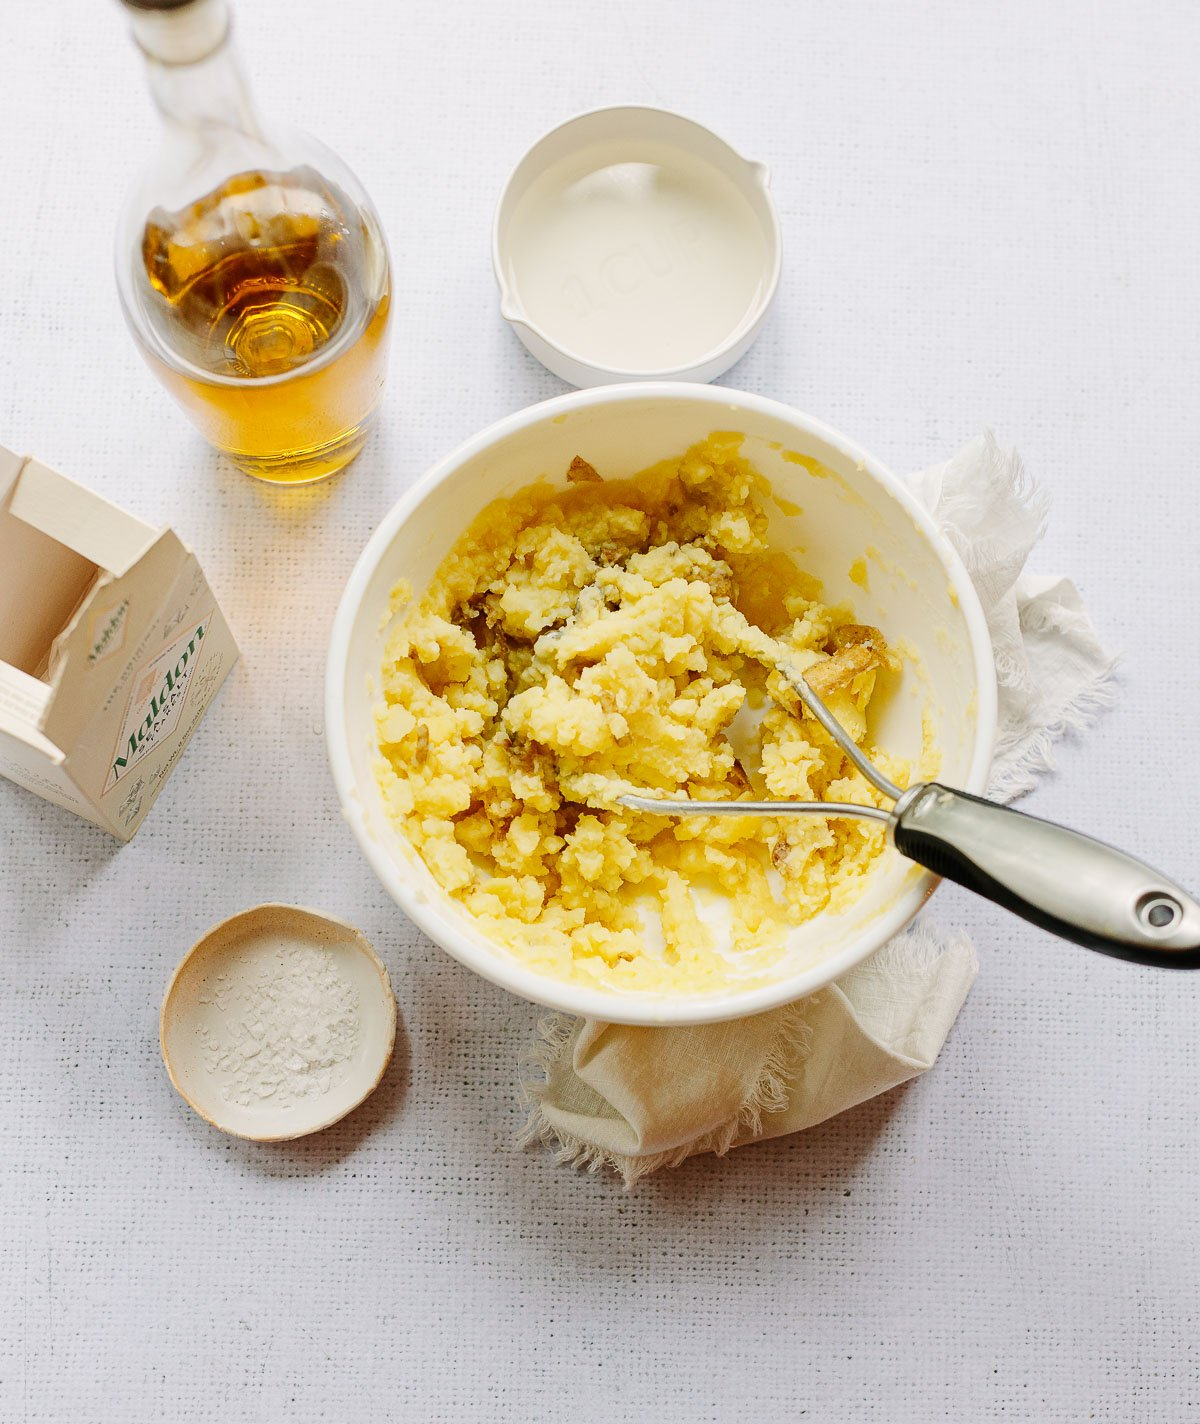 White mixing bowl with handheld potato masher blending cooked potatoes with olive oil, salt and water.